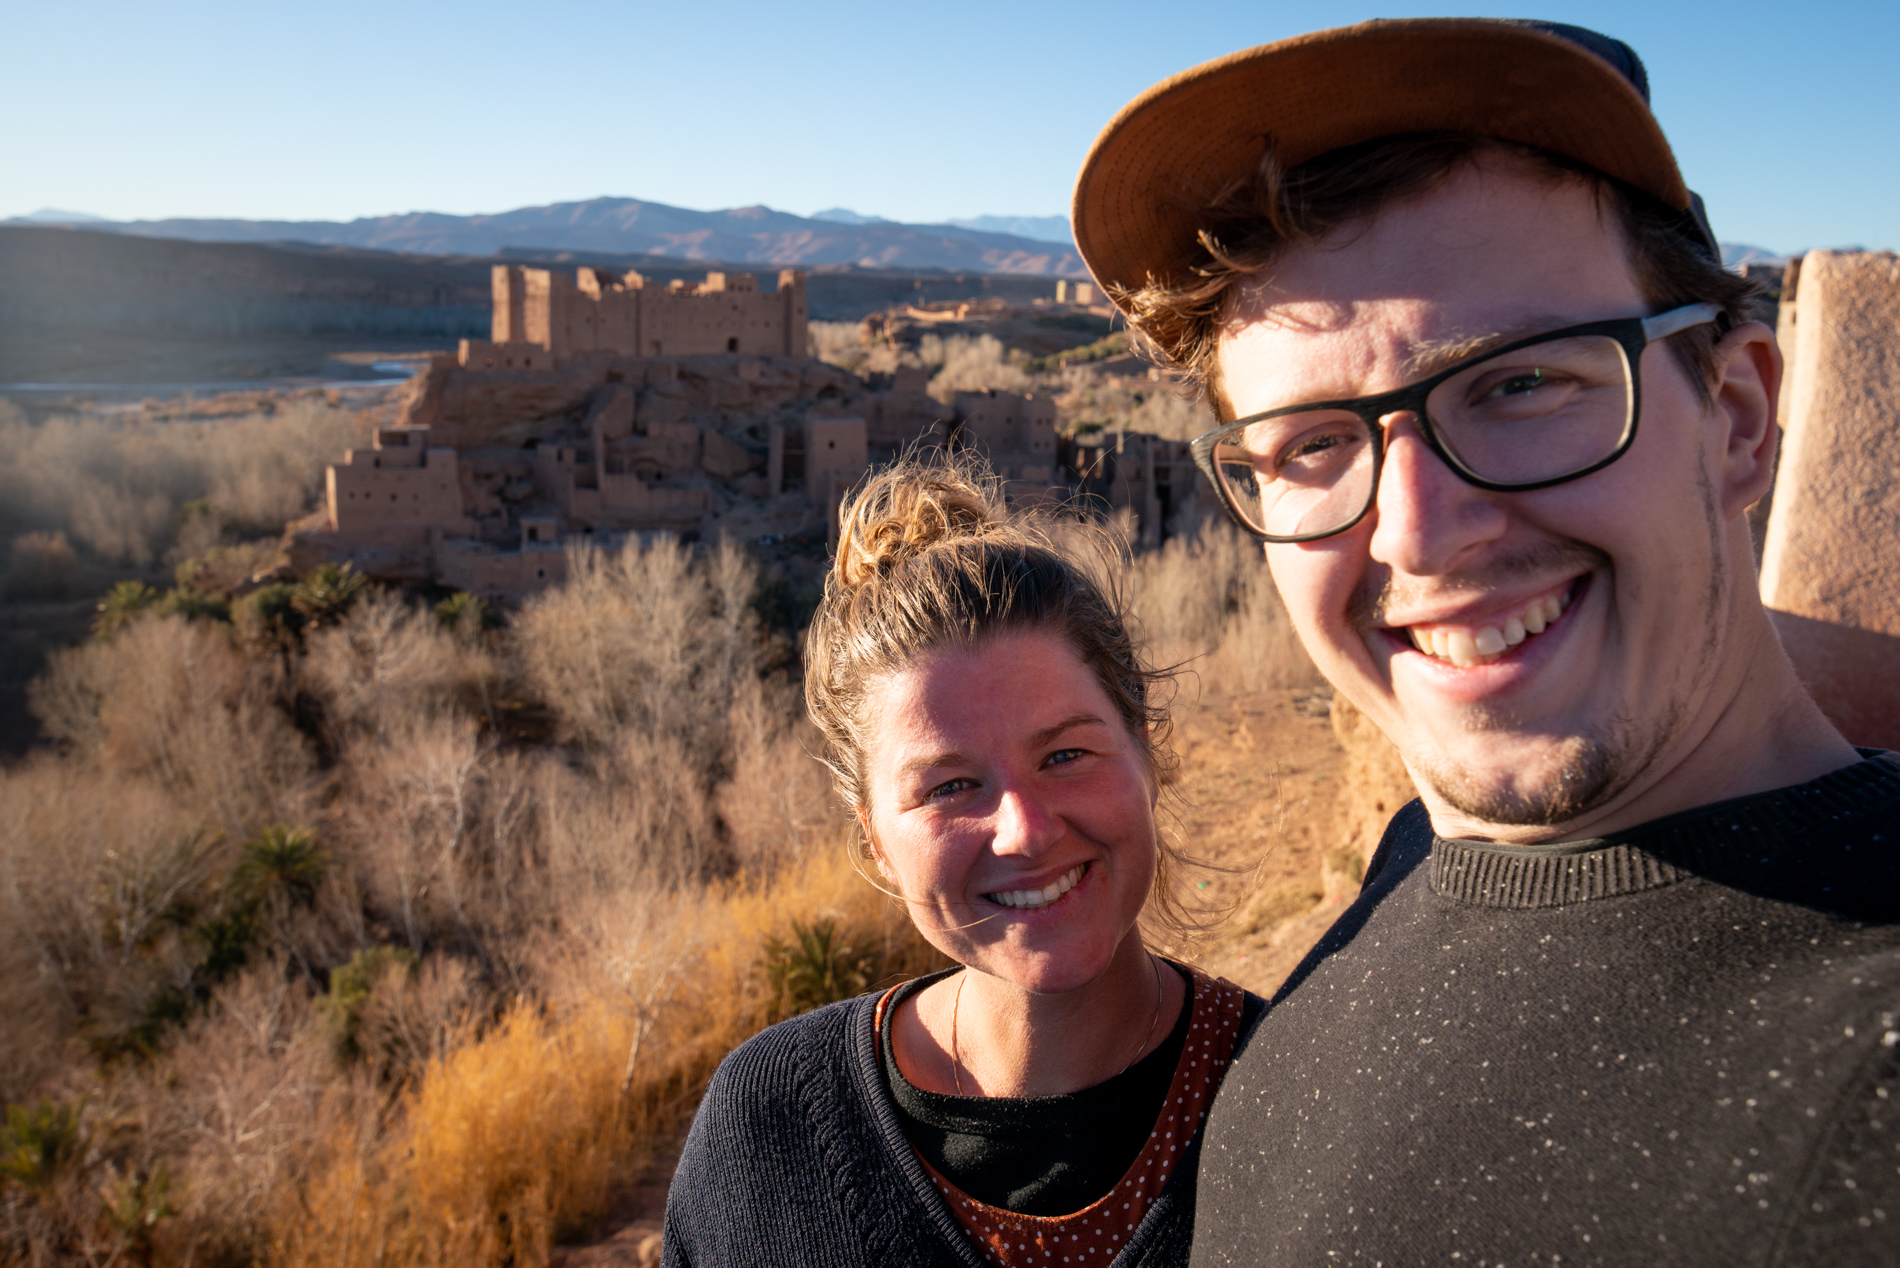 Ellis&me at Kasbah, Kalaat Mgouna, Roses vally in morocco, with a beautiful sunset.